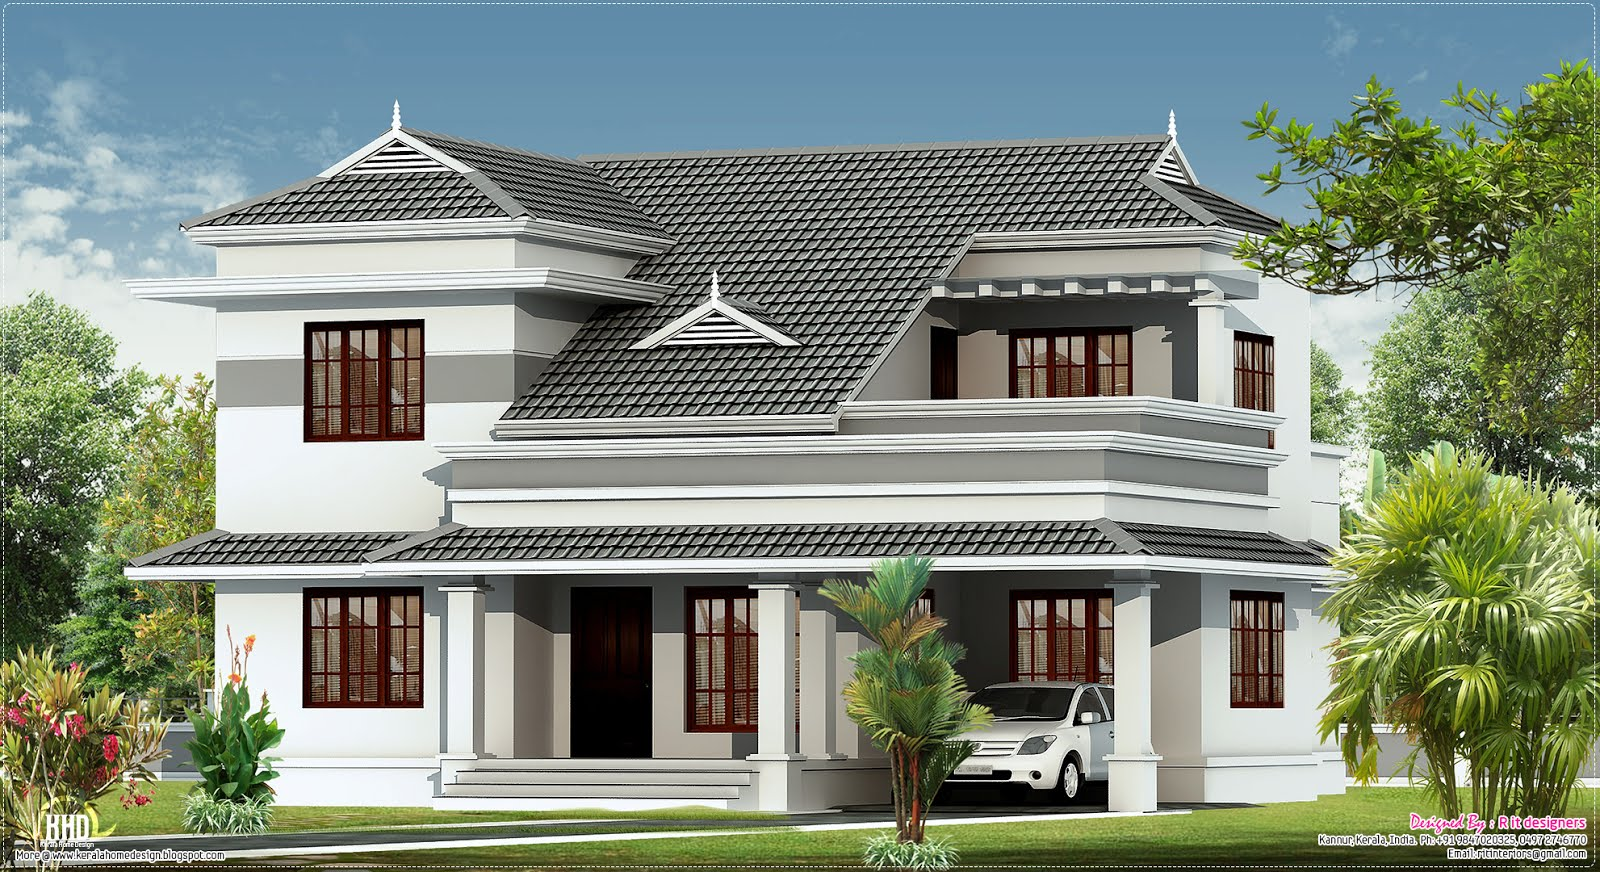 New villa design in 2250 kerala home design and for New home plans